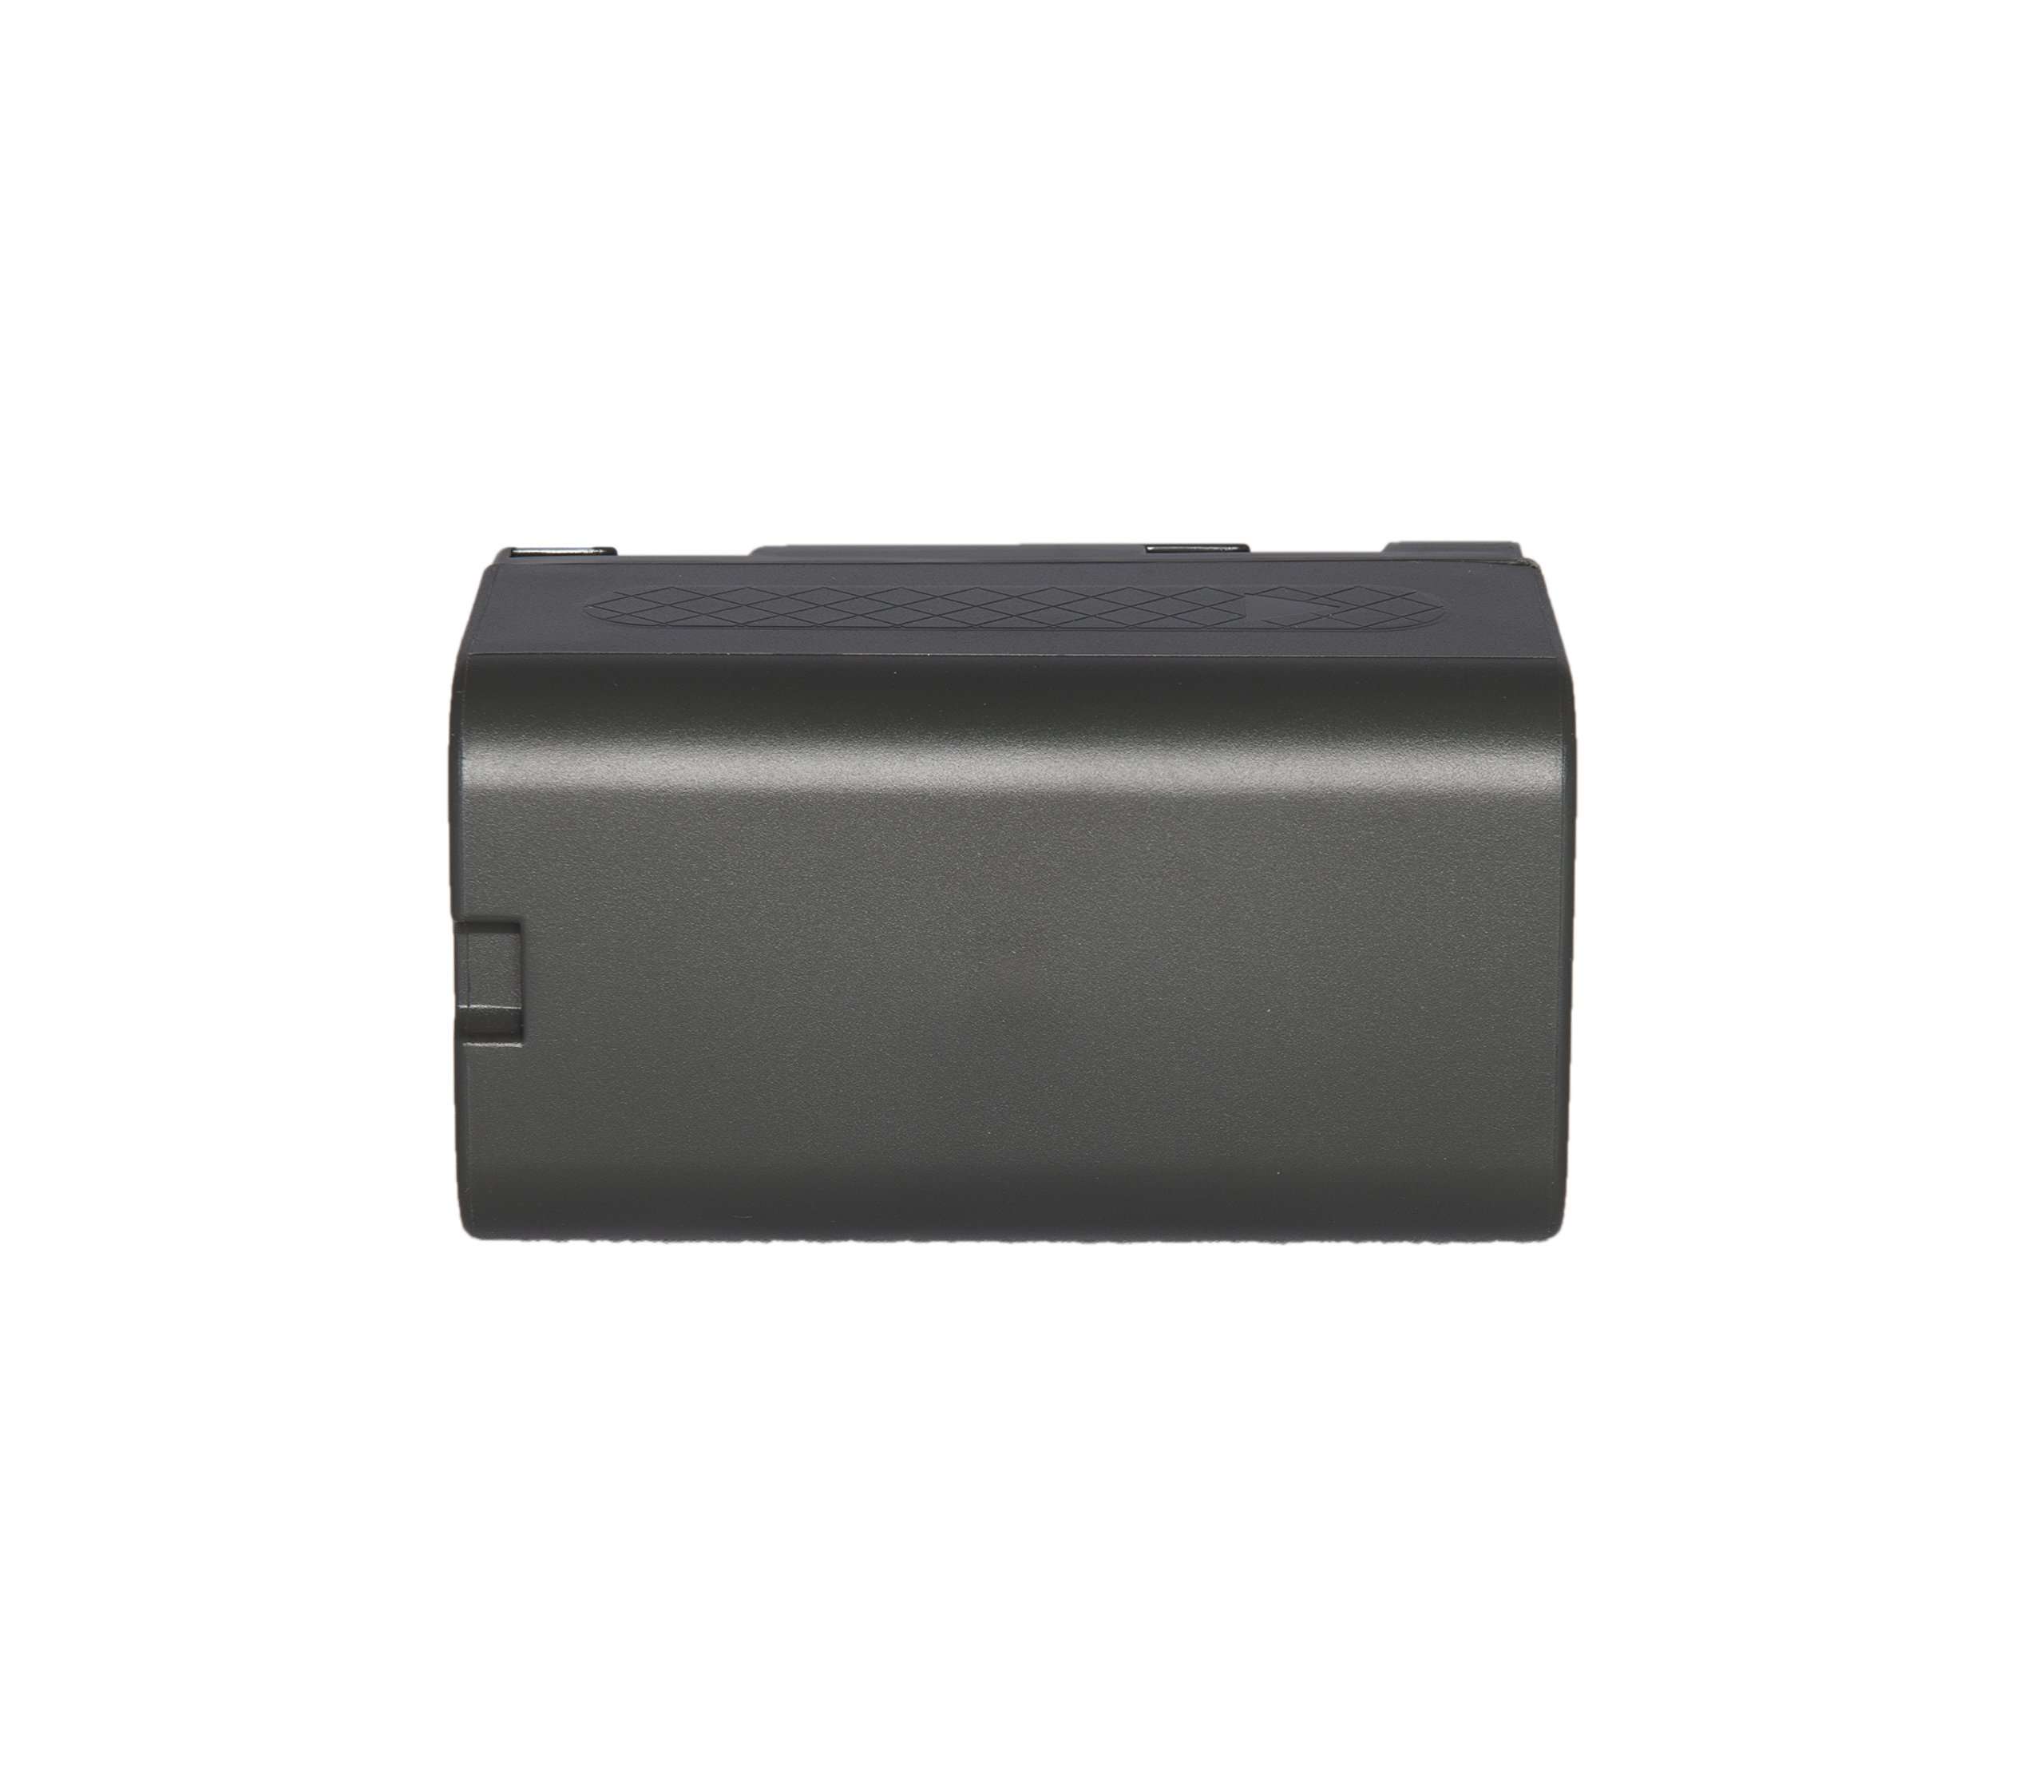 AdirPro BDC70 Li Ion Battery for Topcon Sokkia Total Stations, Robotic Total Stations and GNSS Receivers by AdirPro